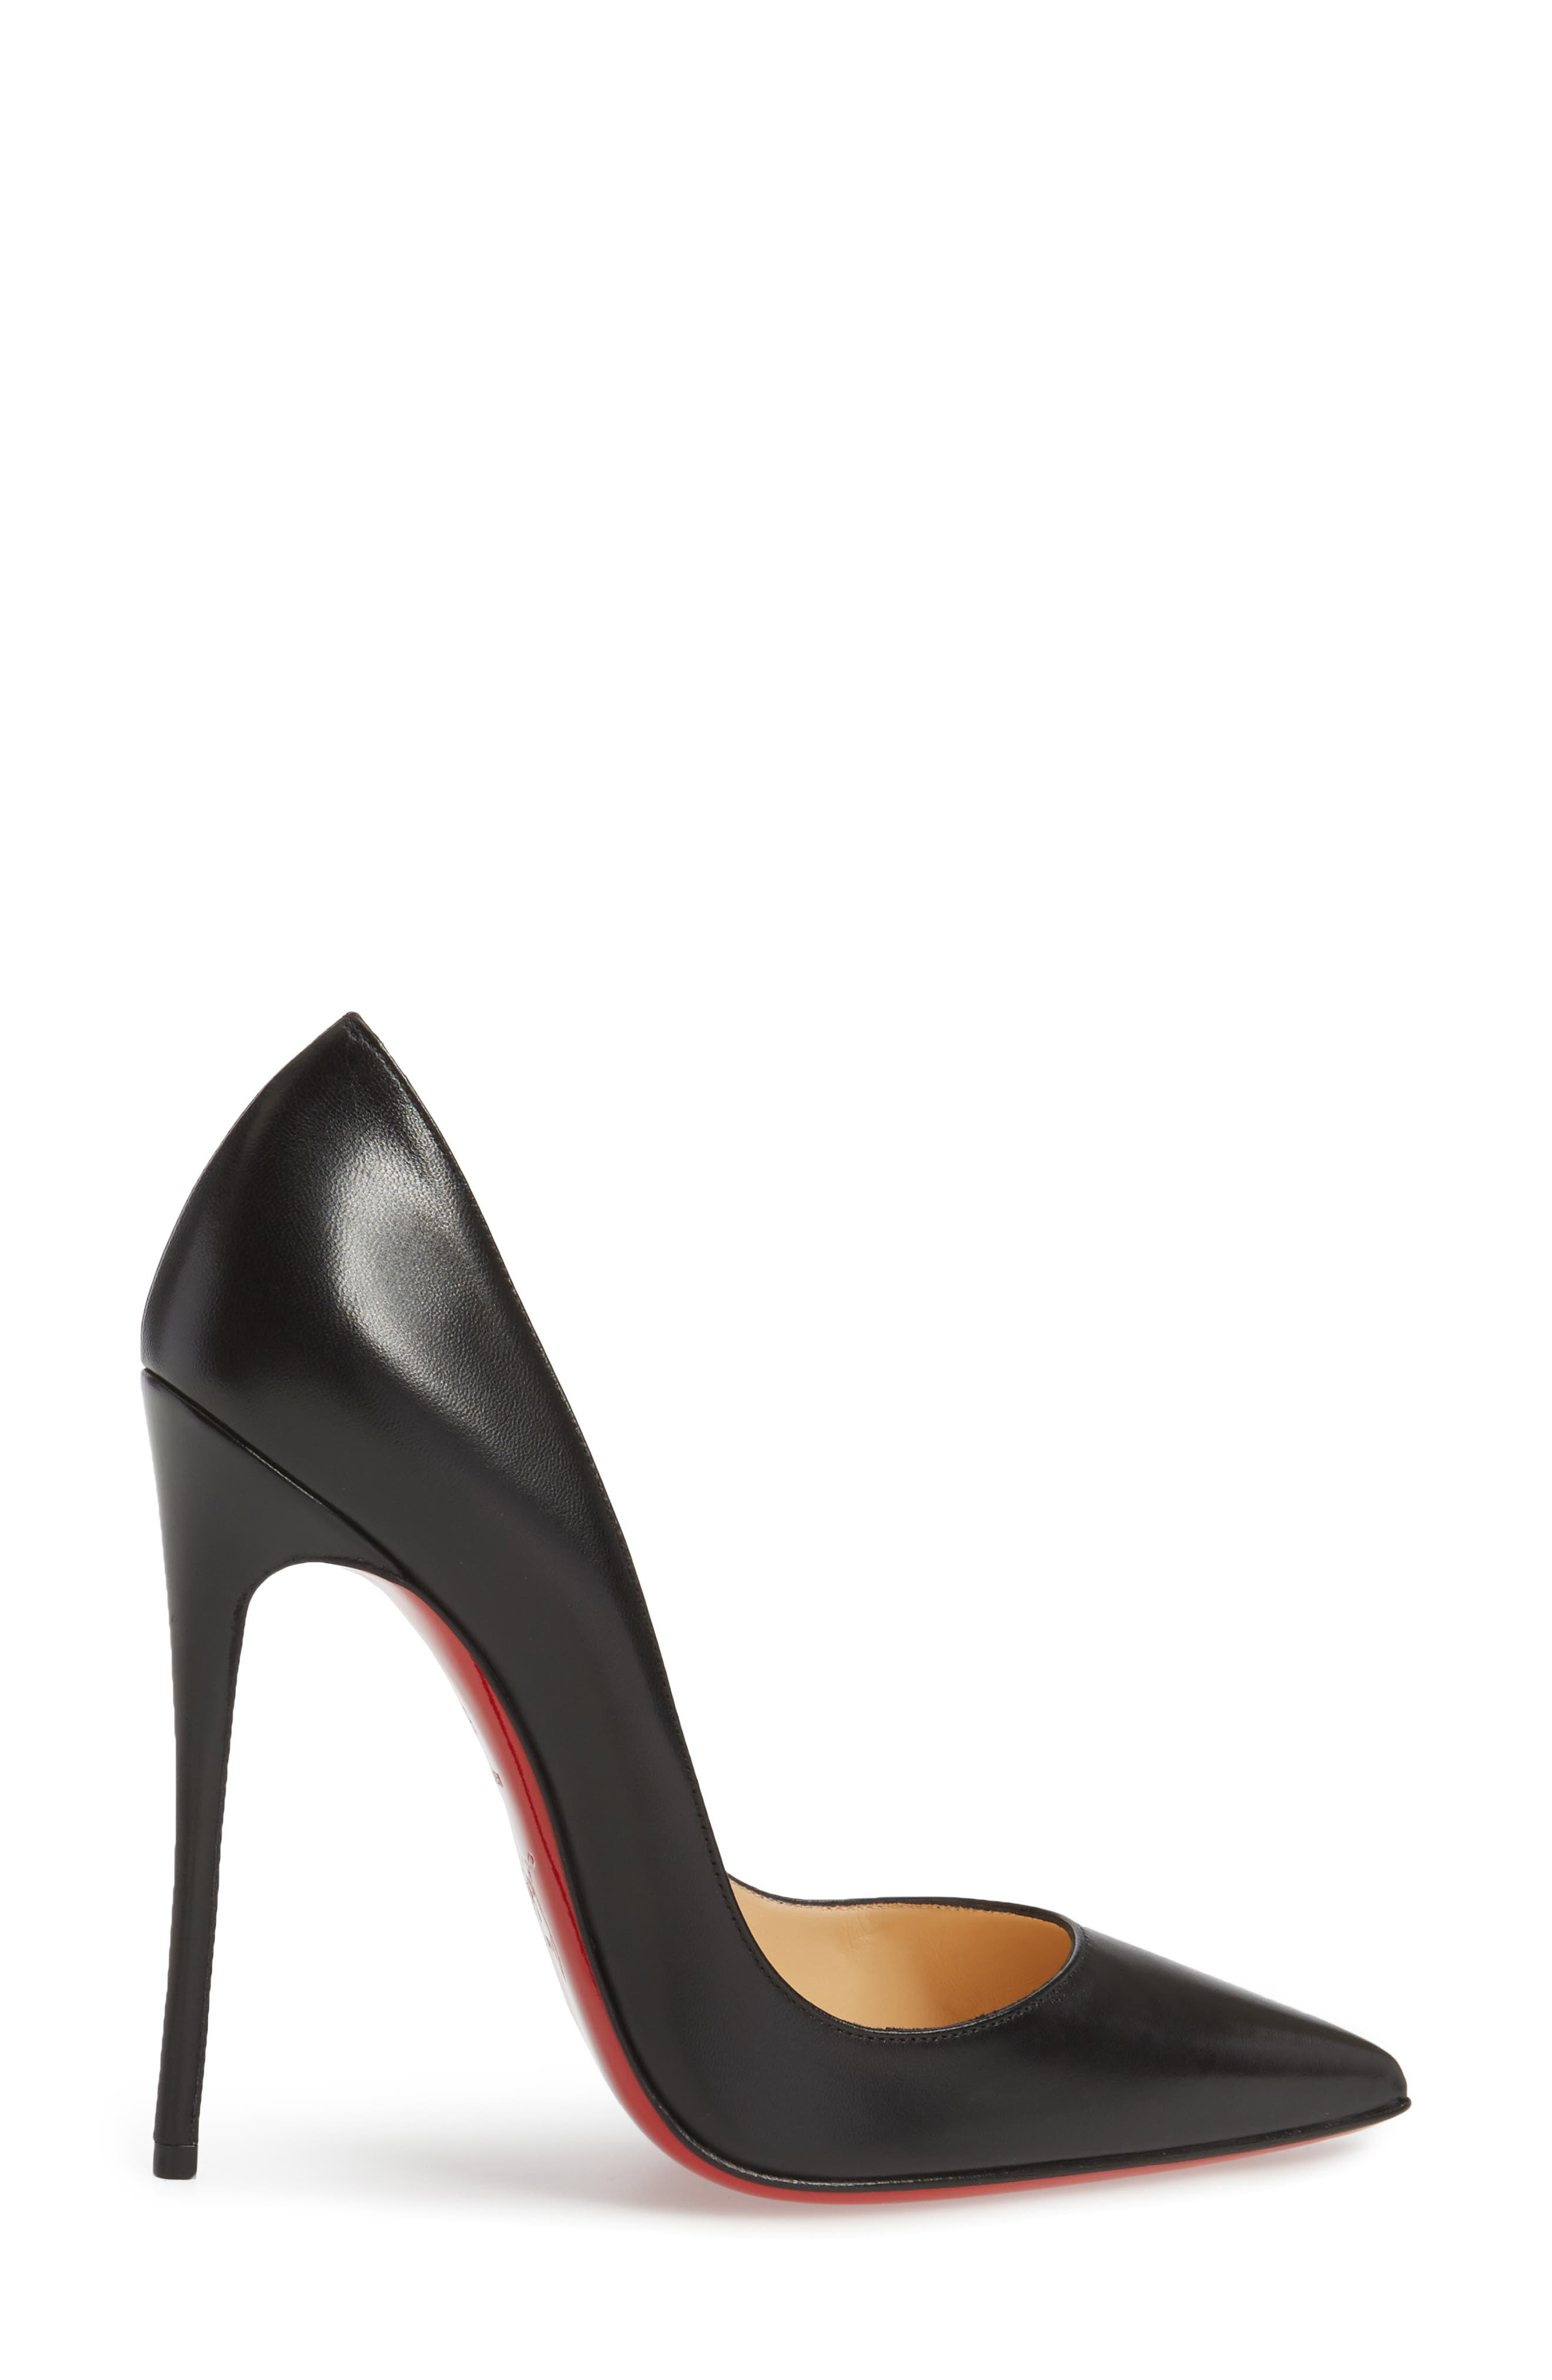 'So Kate' Pointy Toe Leather Pump,                             Alternate thumbnail 3, color,                             001